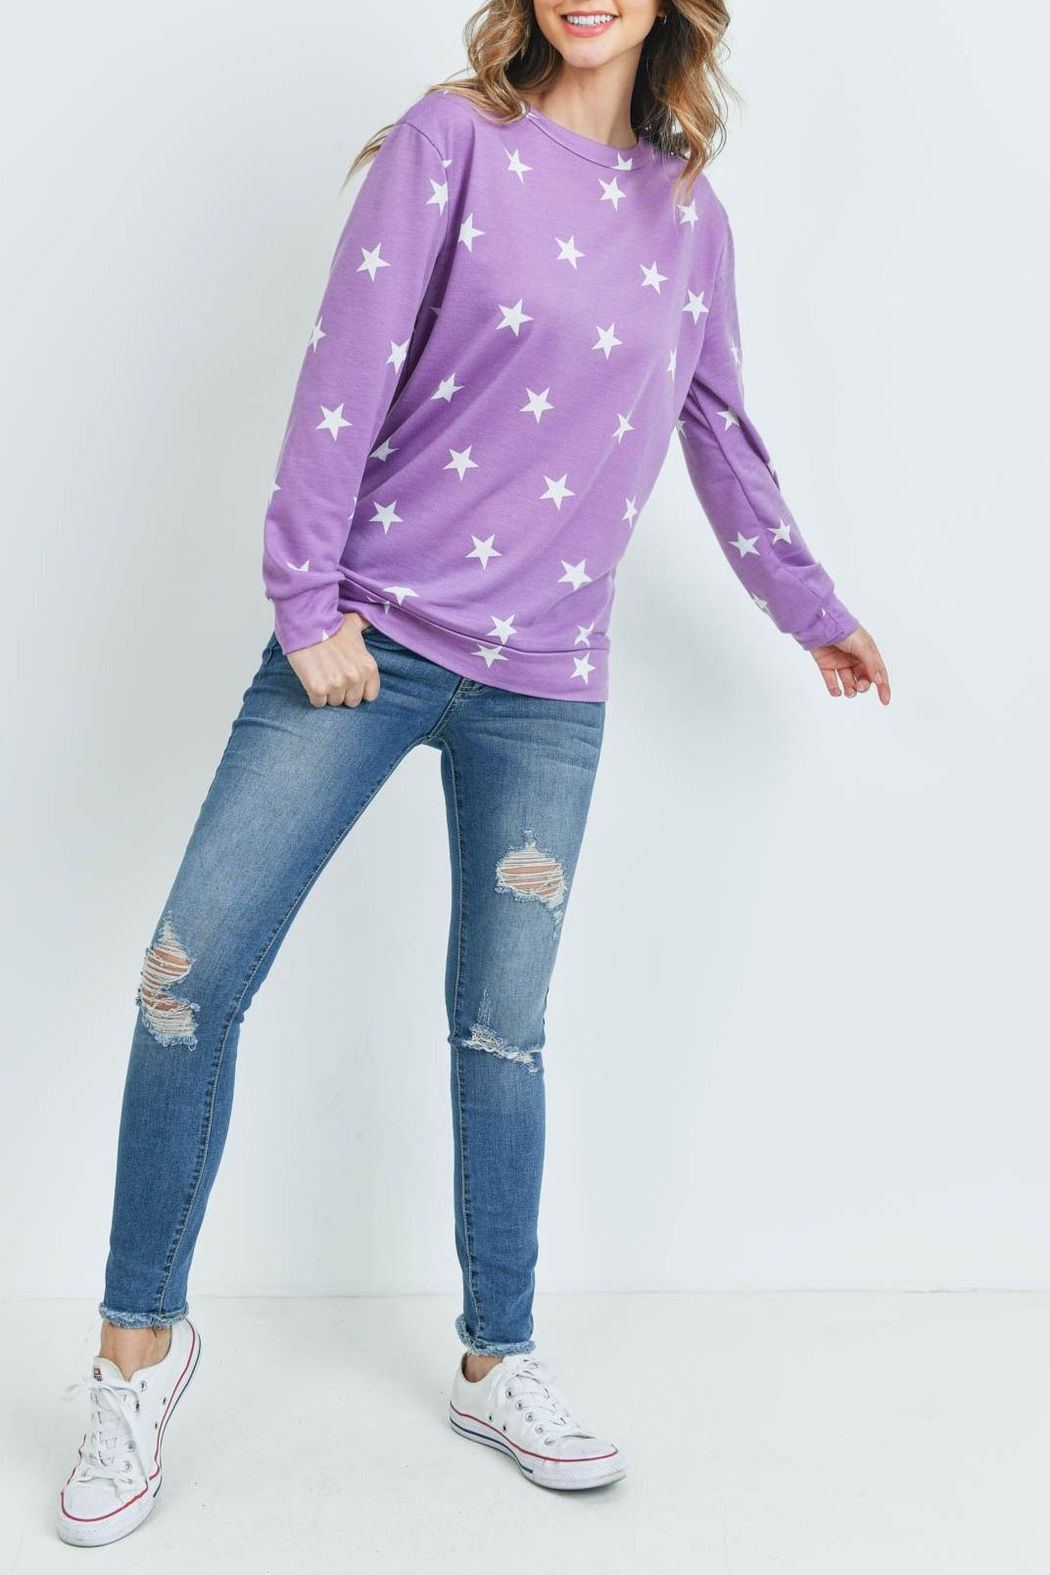 Riah Fashion Star-Print-Long-Sleeve-Pullover - Side Cropped Image